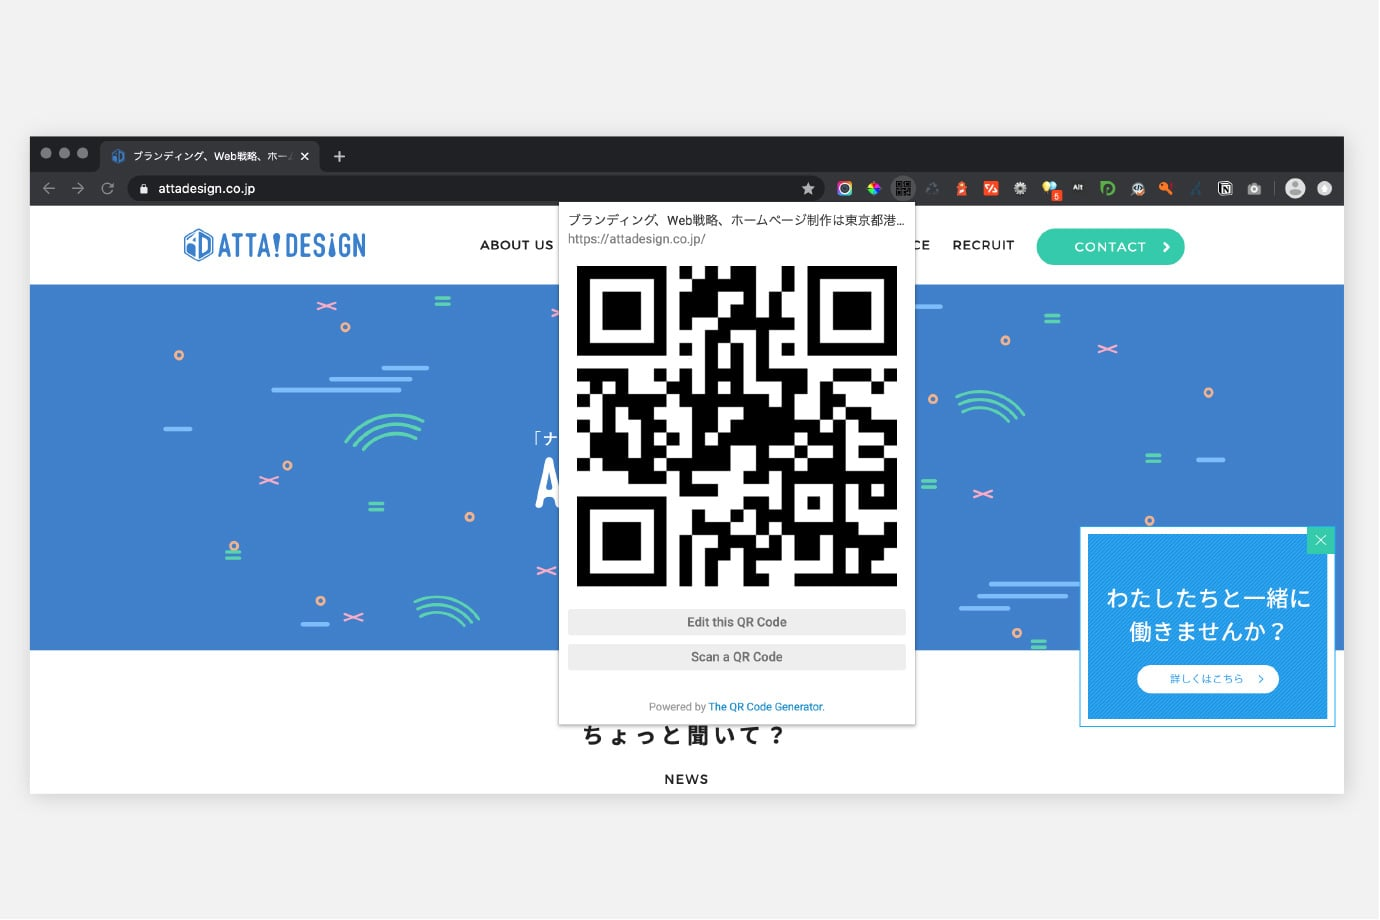 The QR Code Extensionm 使用している様子